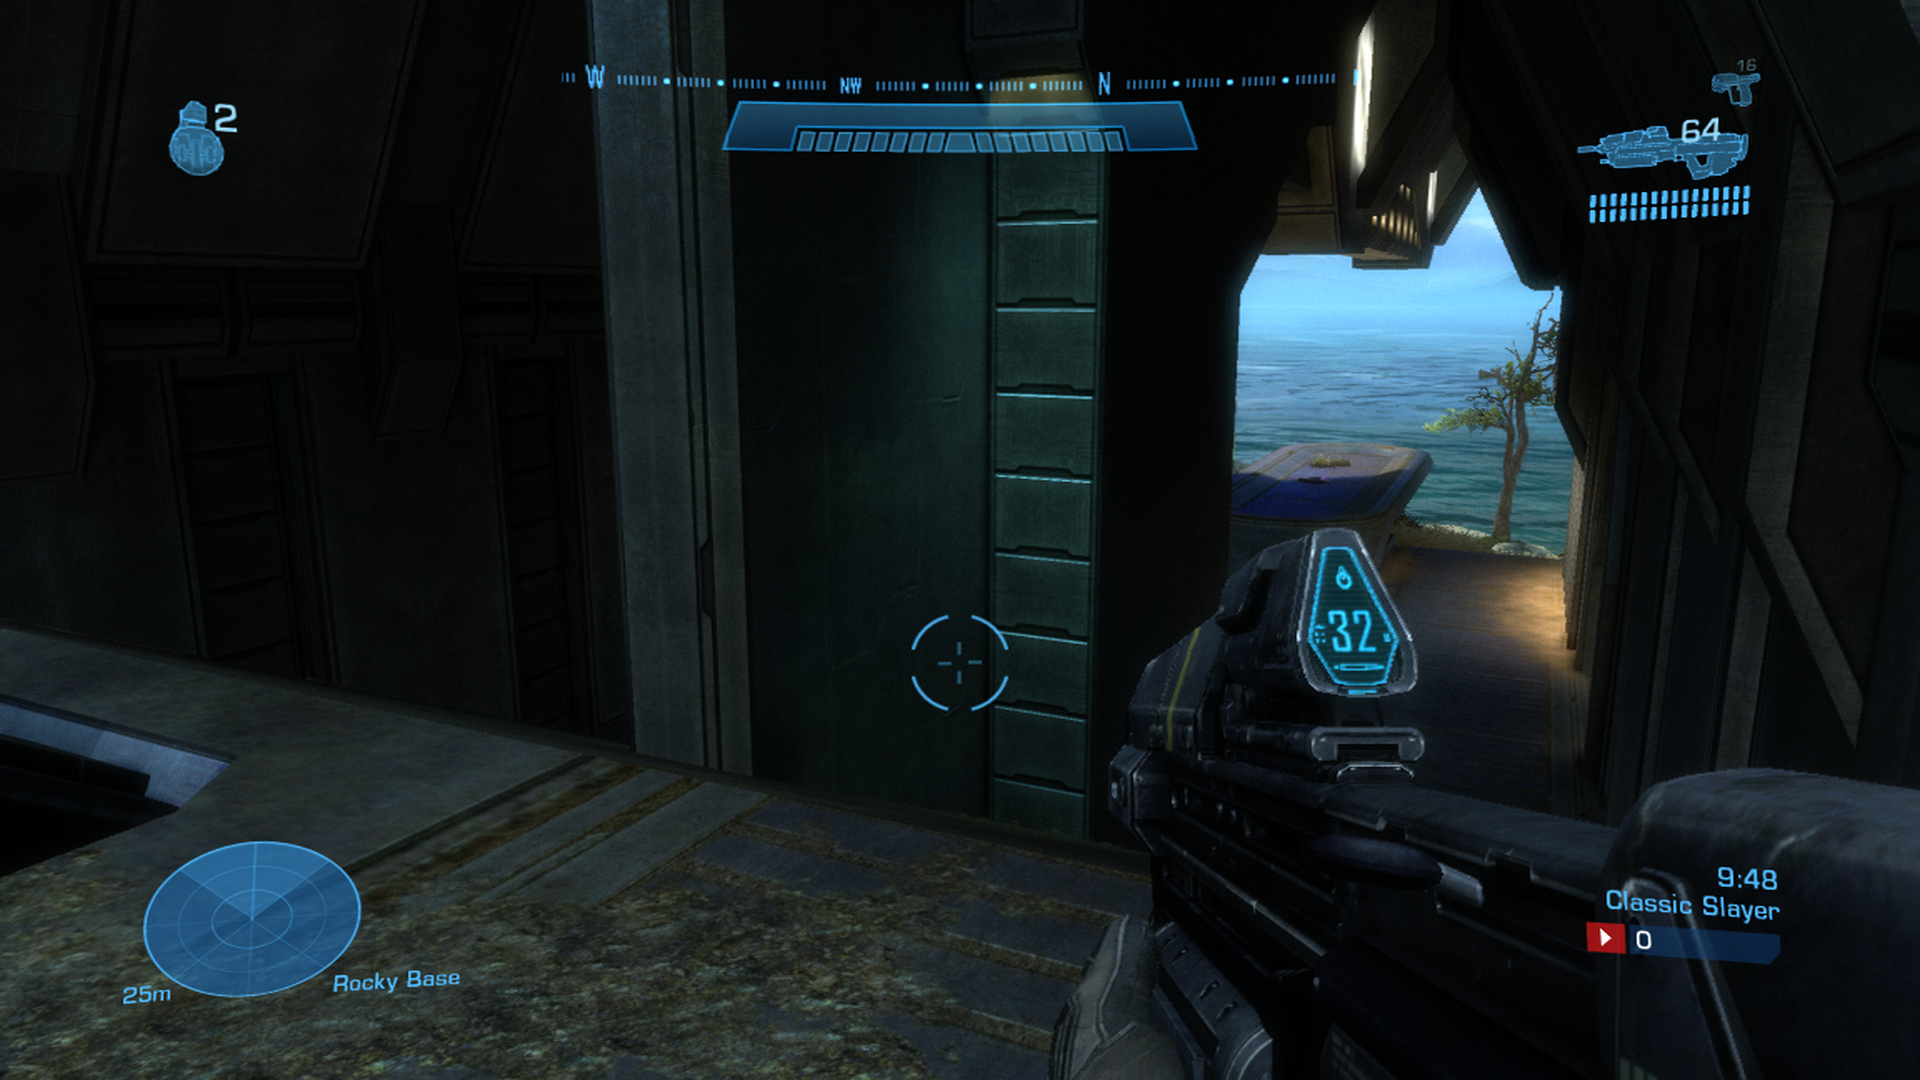 Halo: Reach - Noble Map Pack Screenshots for Xbox 360